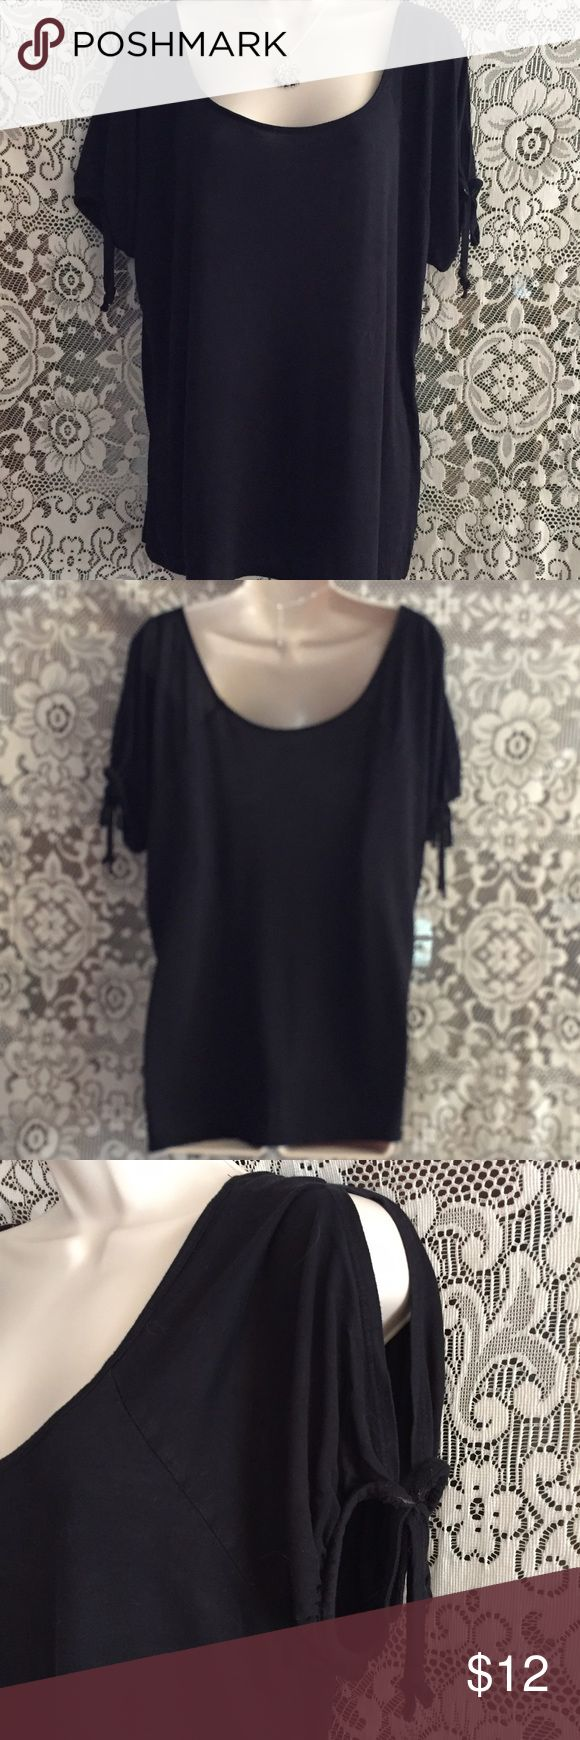 COLD SHOULDER SHORT SLEEVE TOP Love this top but doesn't fit anymore. A.N.A. Black short sleeve, cold shoulder soft top with ties on the sleeves. Deep scoop neck in front and back. Looks amazing on! Gently used! a.n.a Tops